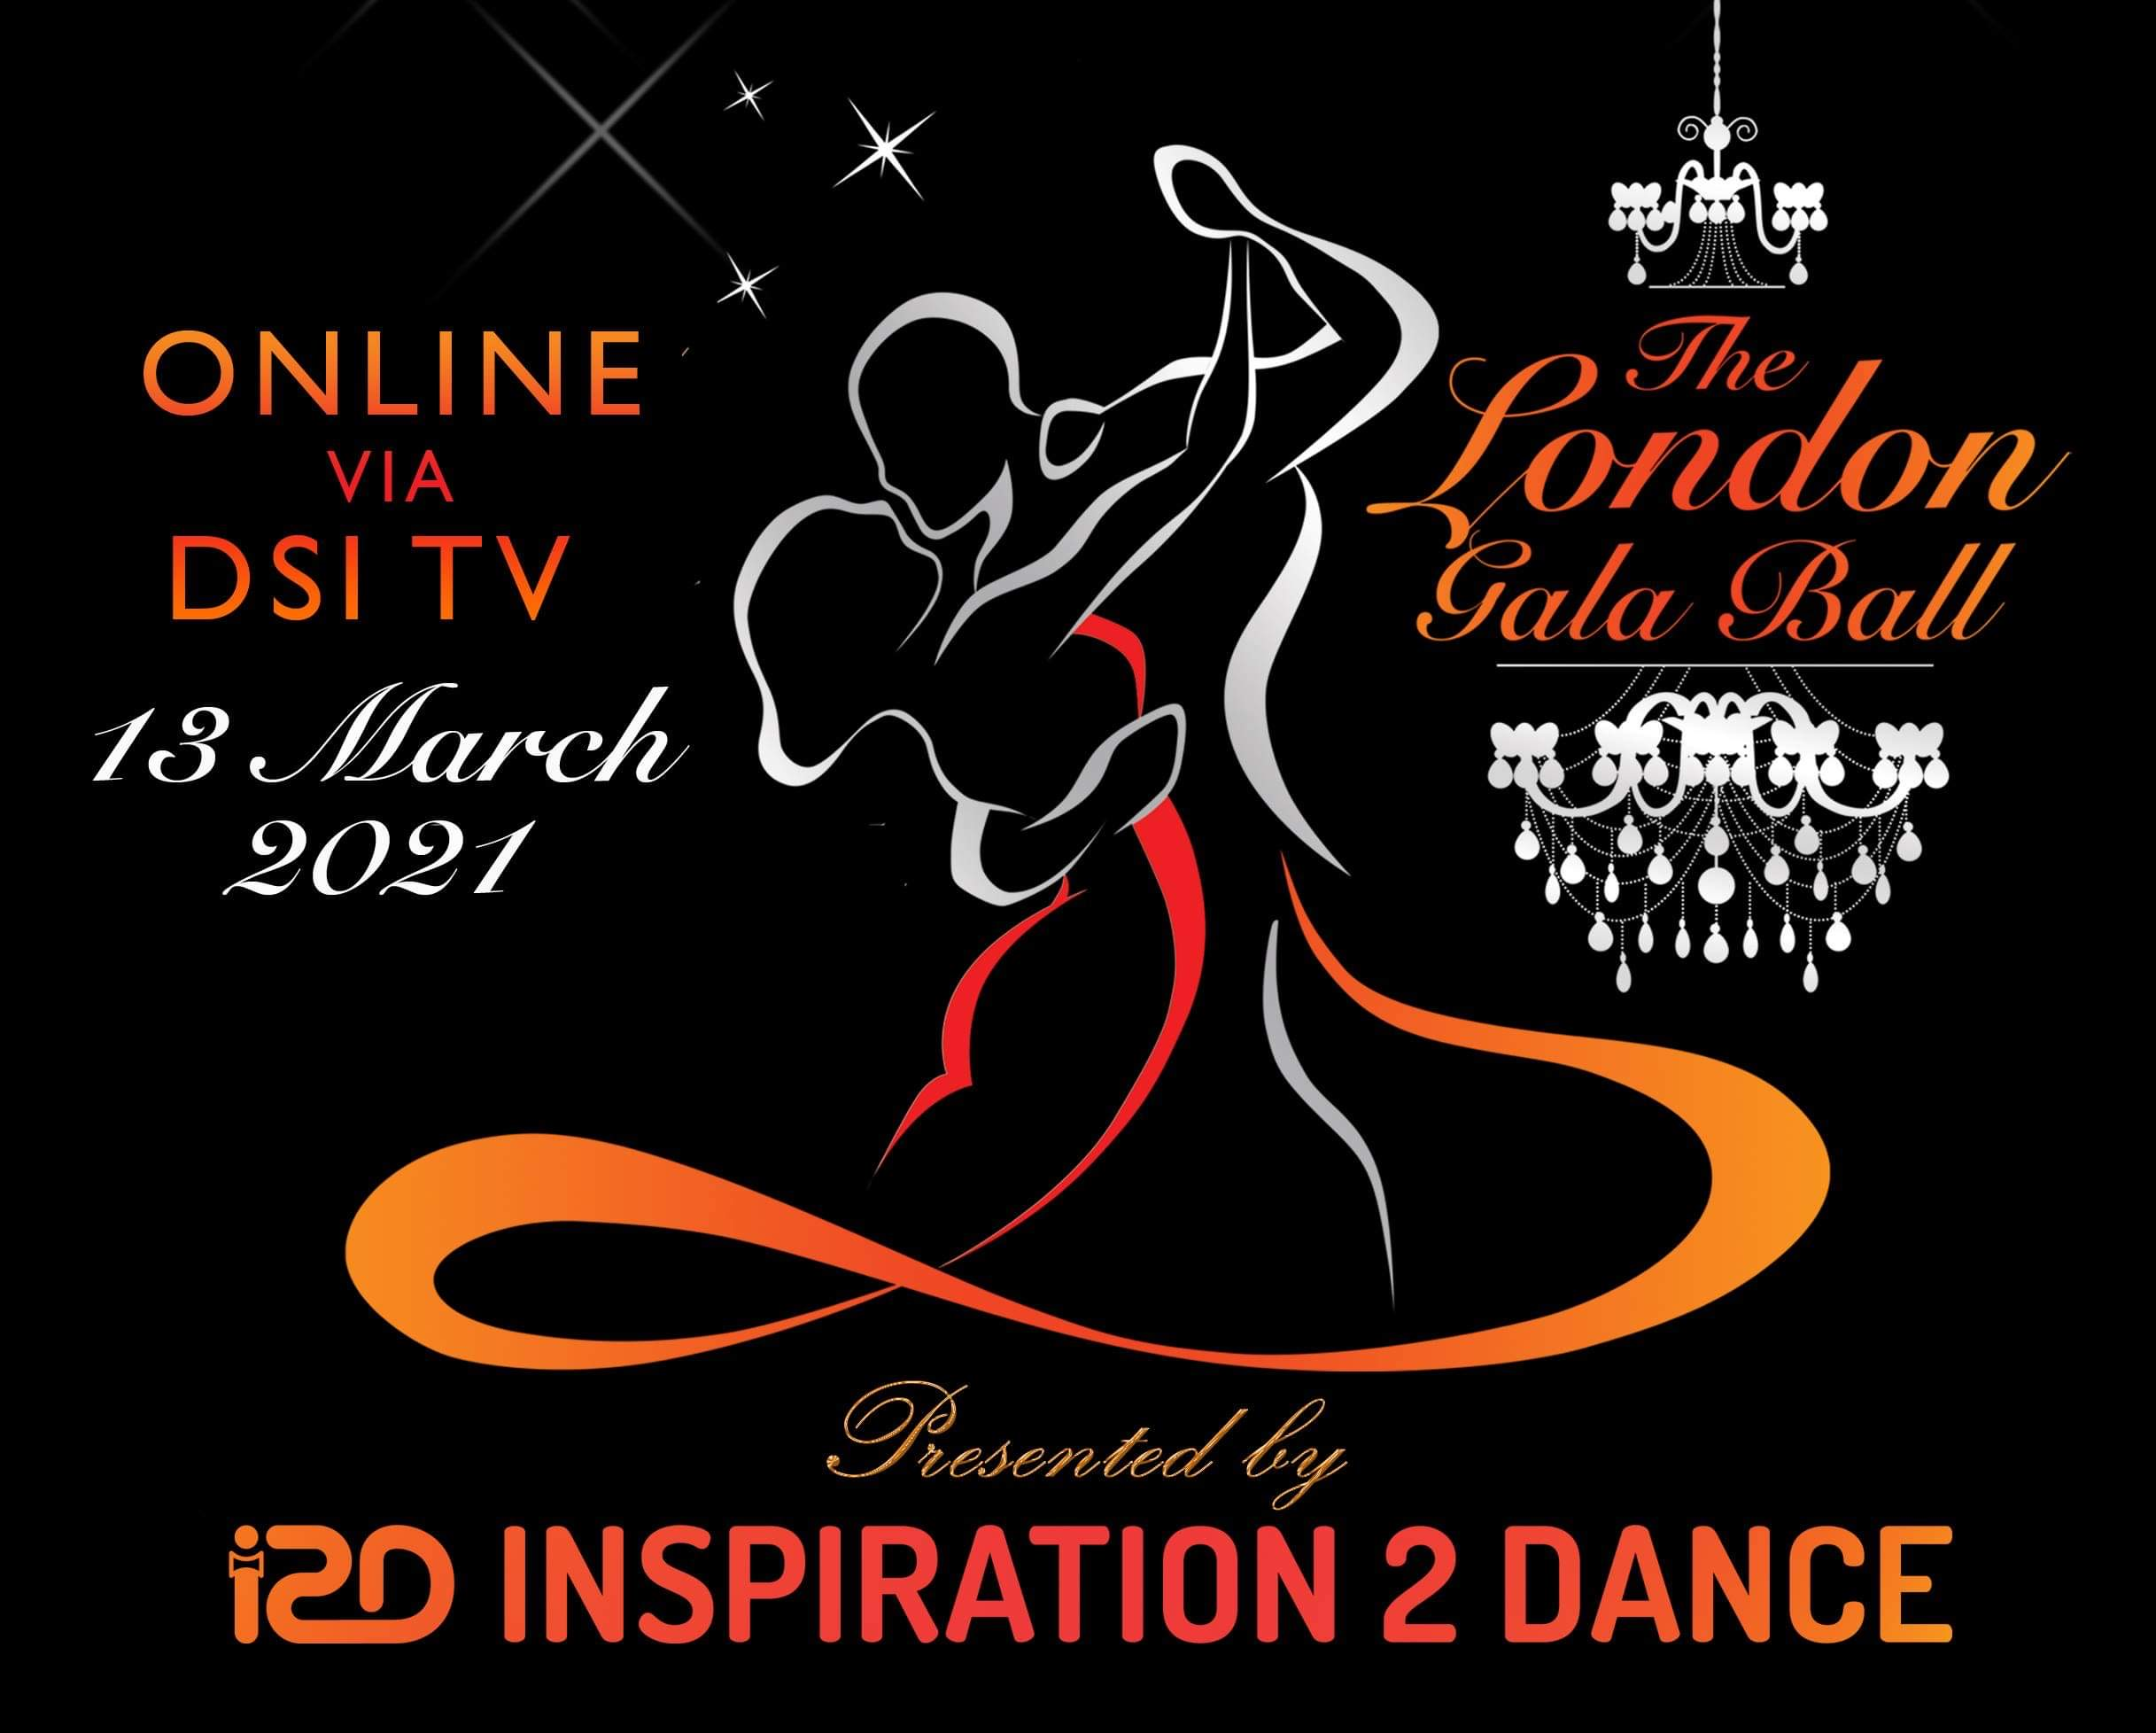 The London Gala Ball